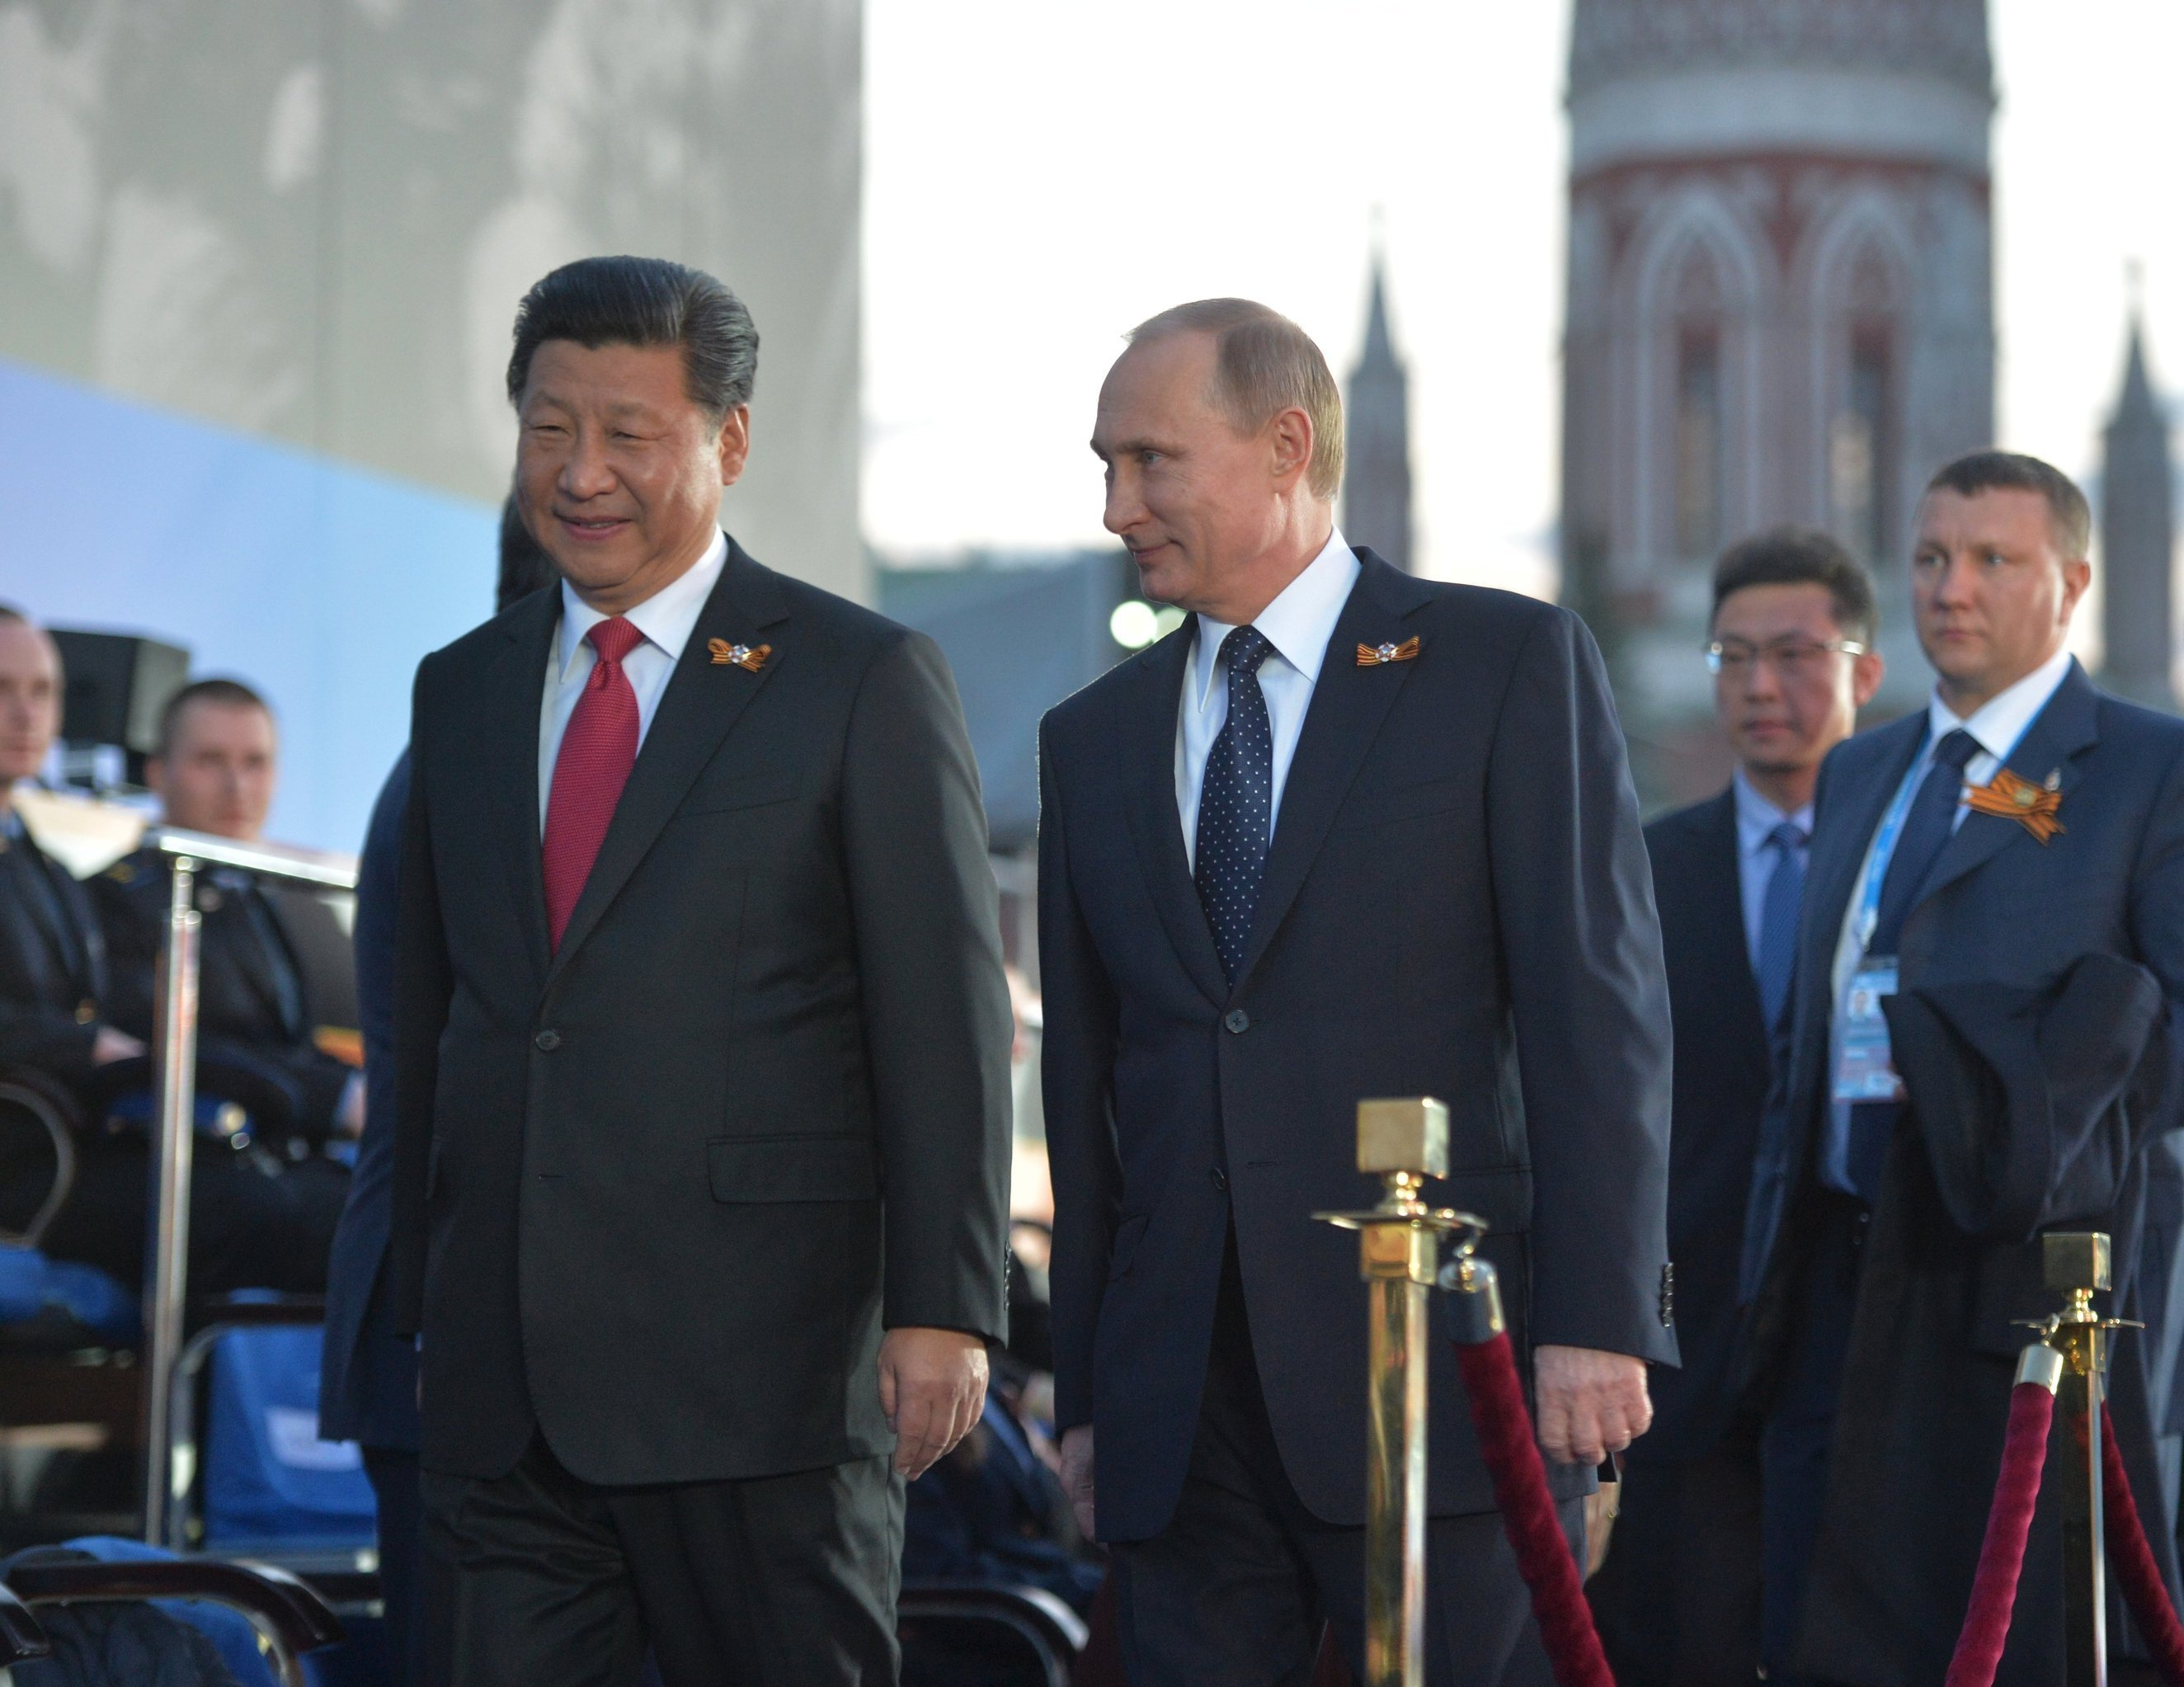 Russian President Vladimir Putin and President of the People's Republic of China Xi Jinping